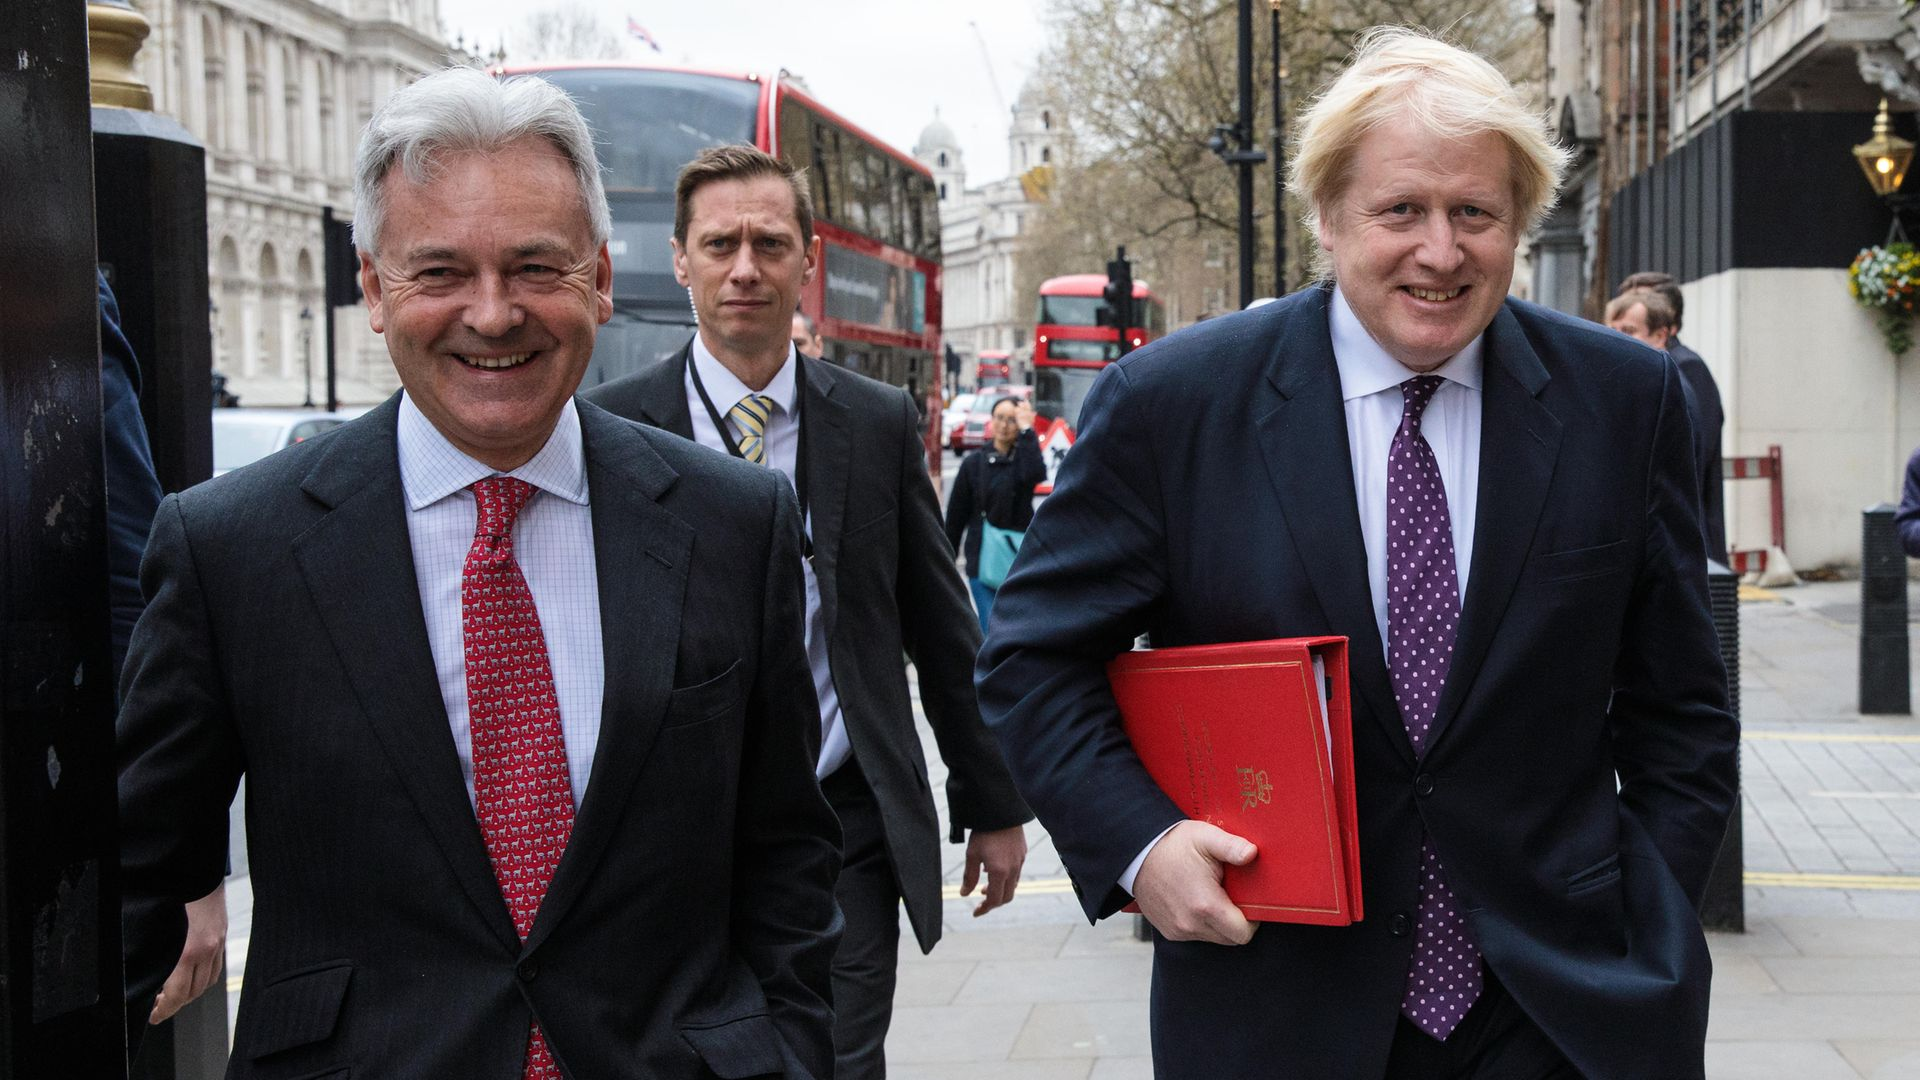 Sir Alan Duncan (L) and  Boris Johnson (R) walk down Whitehall on March 29, 2017 - the day Theresa May triggered Article 50 - Credit: Photo by Jack Taylor/Getty Images